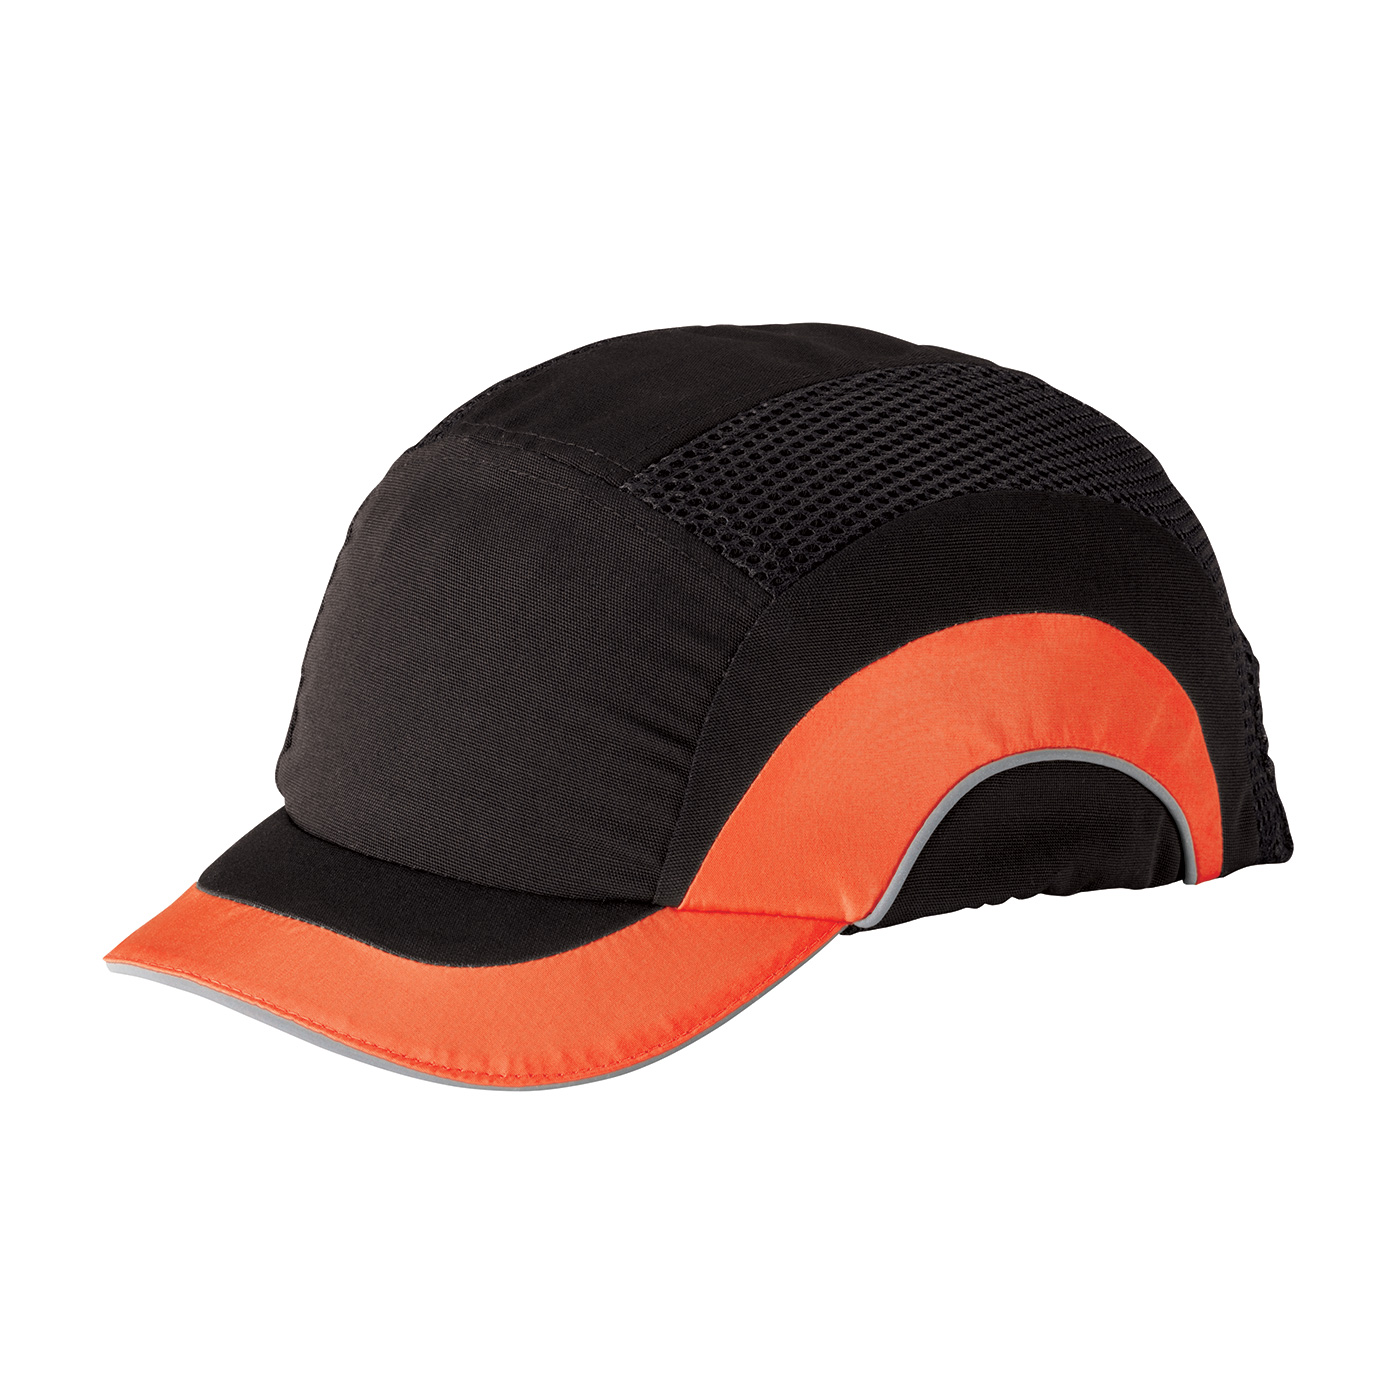 111c7a89a48bb HardCap A1+™ Baseball Style Bump Cap with HDPE Protective Liner and  Adjustable Back - Short